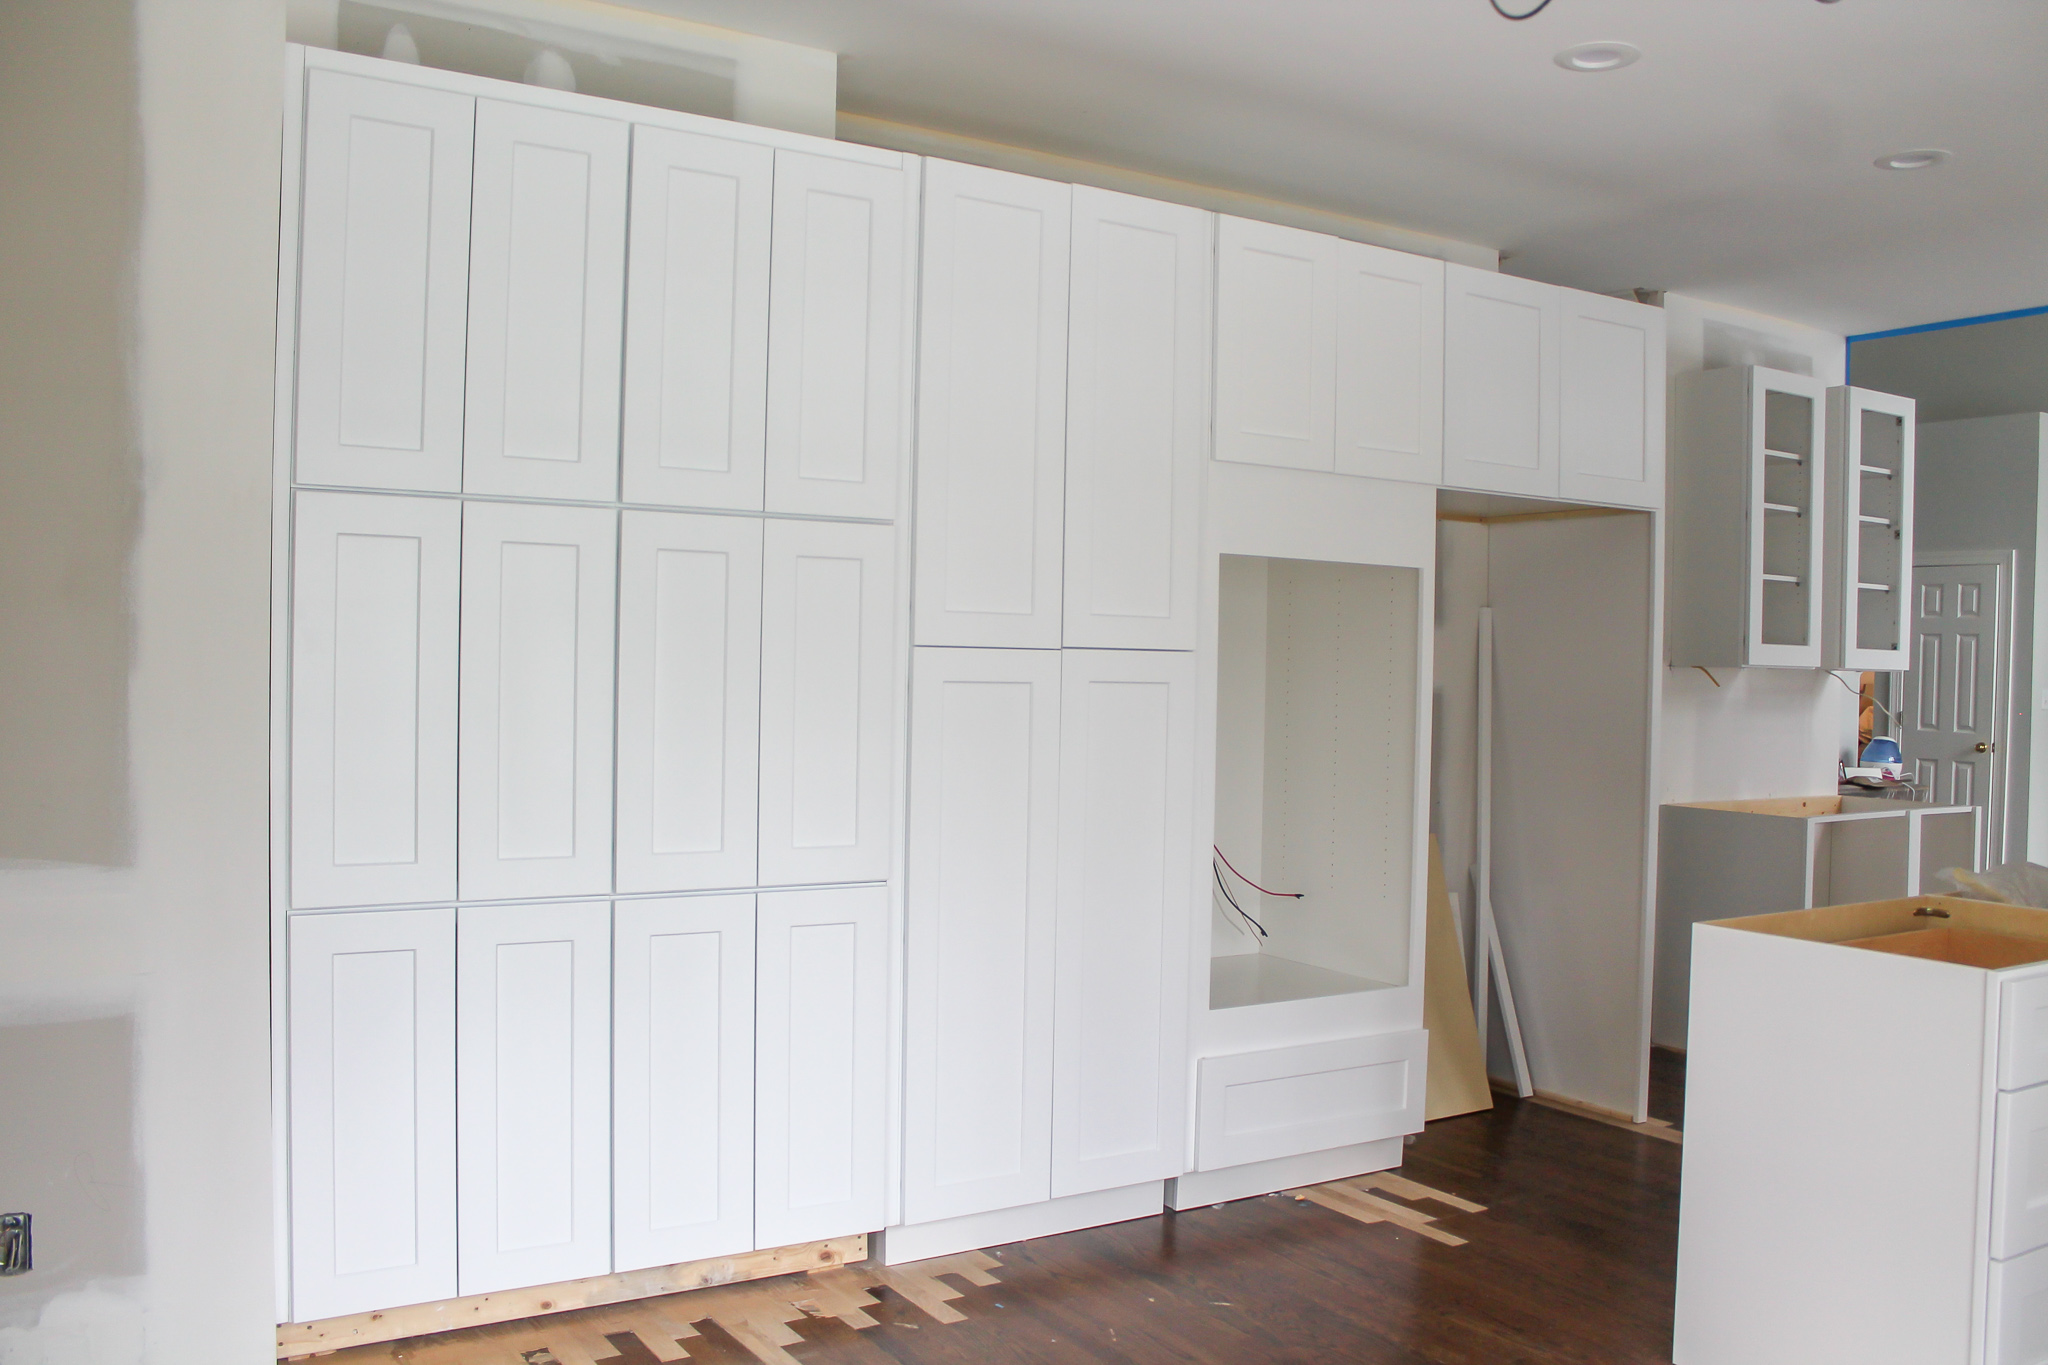 Our Kitchen Reno: The Cabinetry & Kitchen Organization